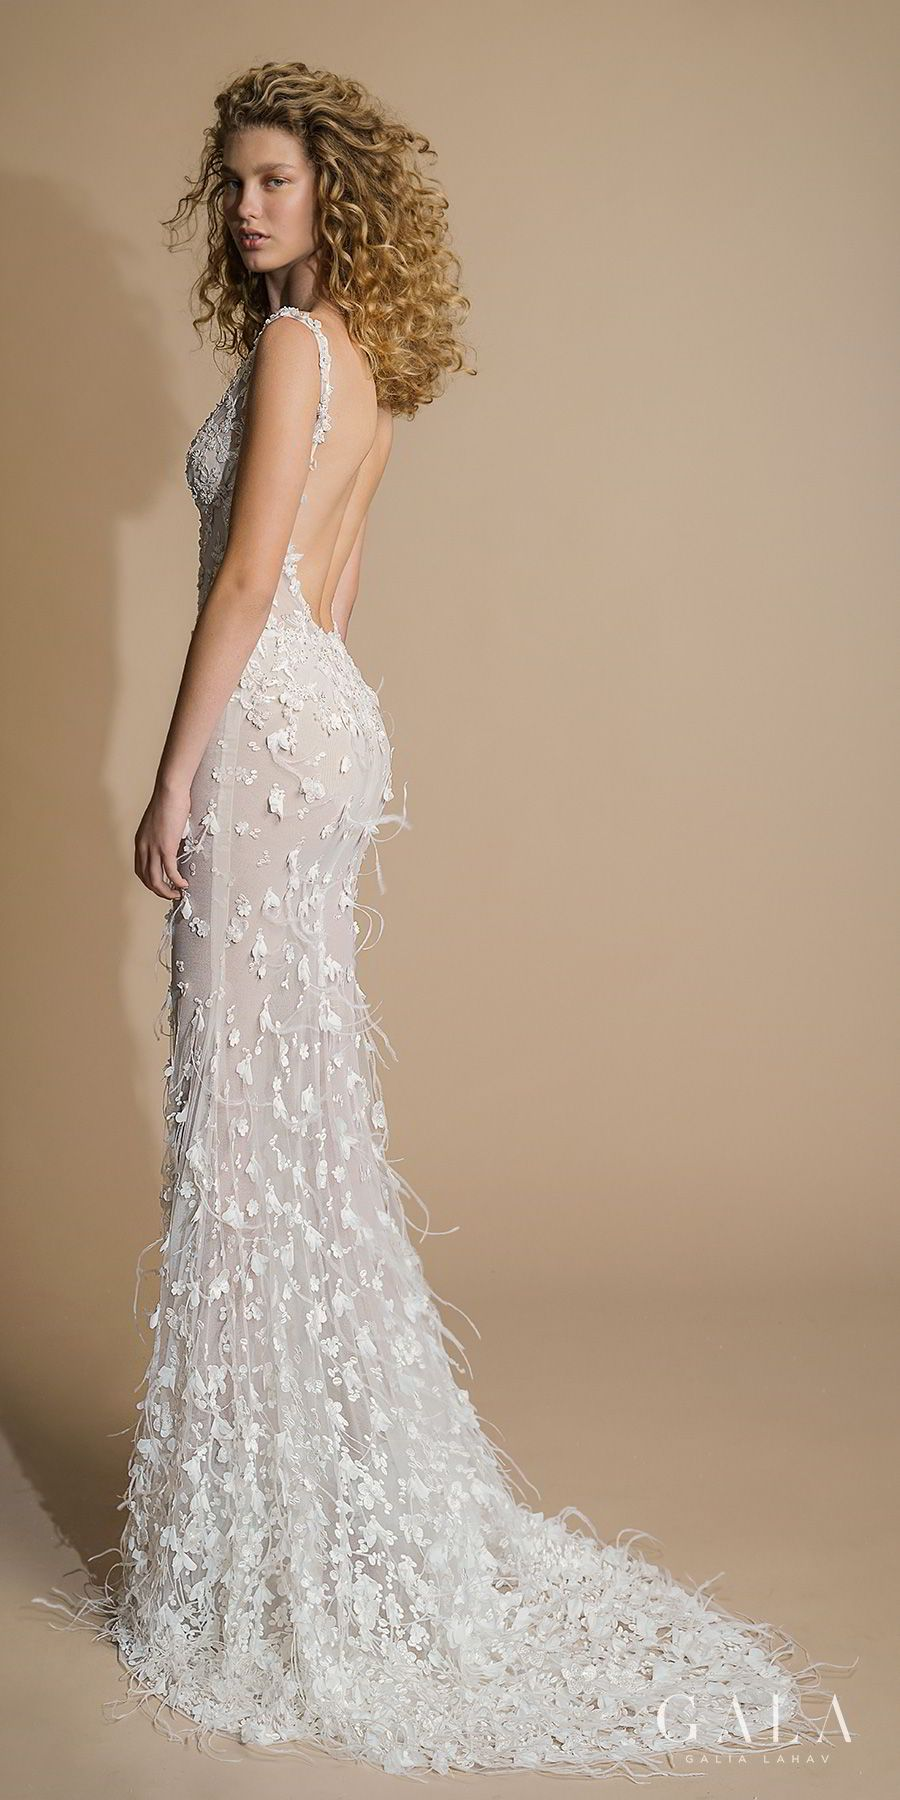 Gala by galia lahav collection no vi these wedding dresses are the